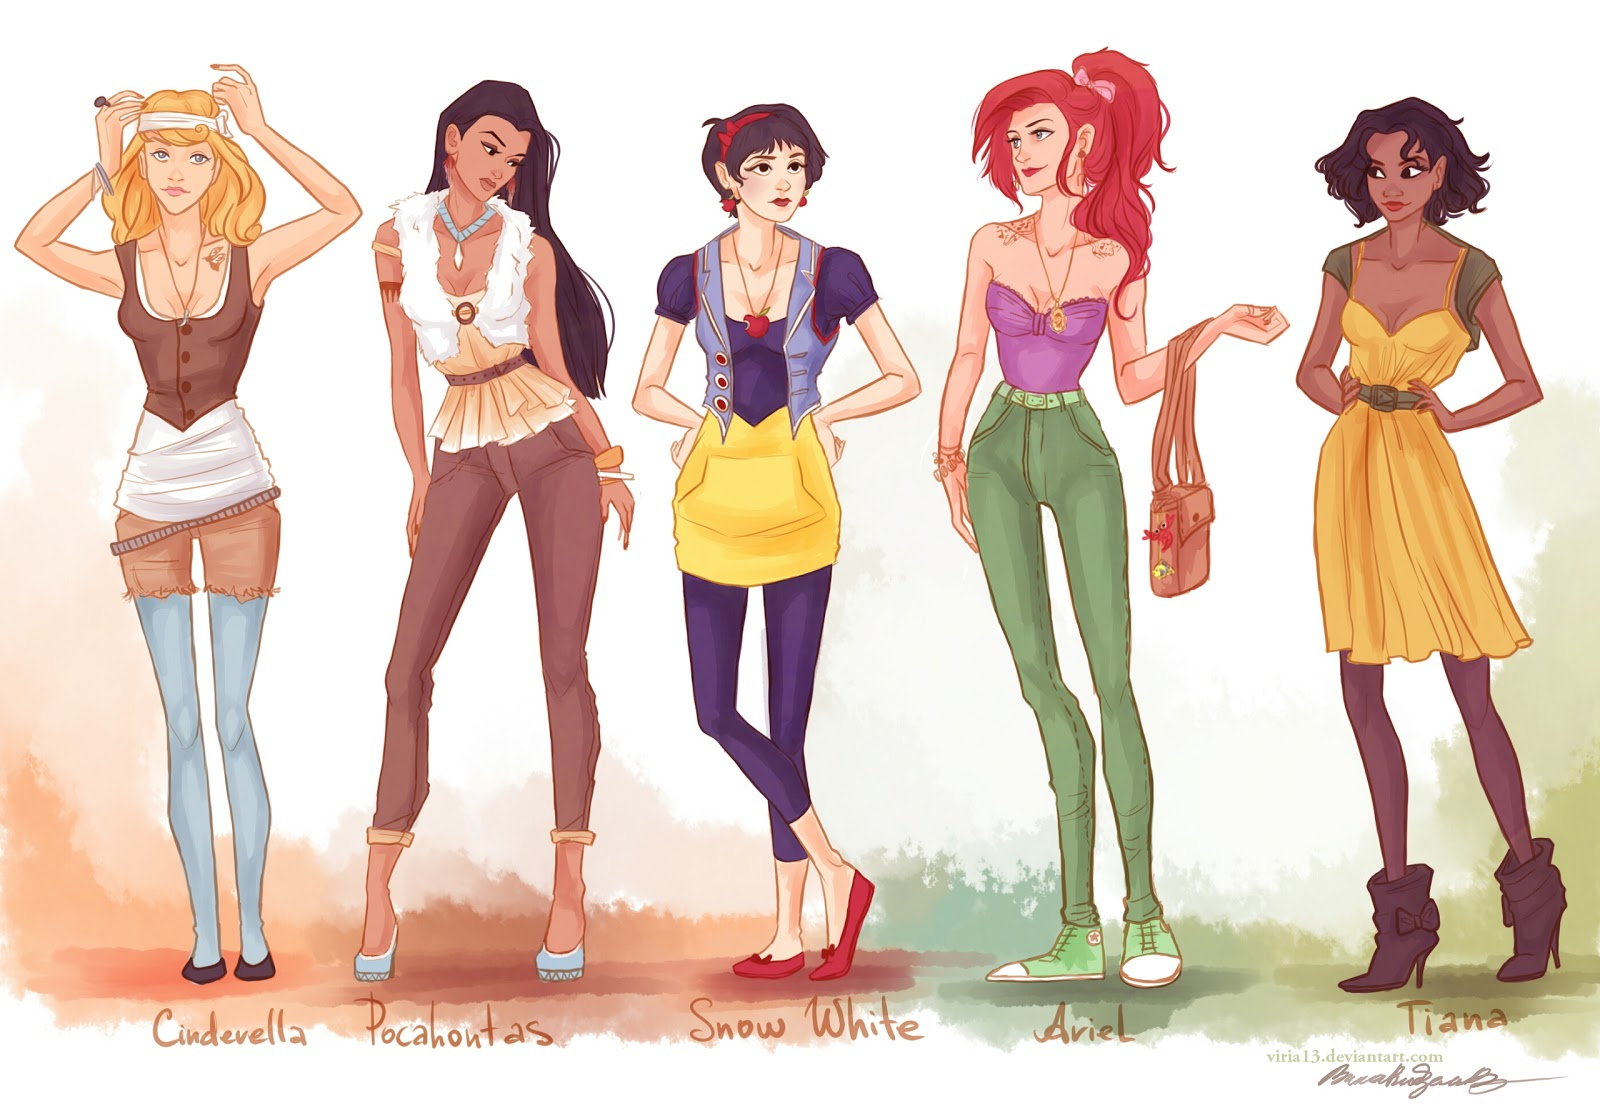 Set Of Drawings Showing Women From Animated Movies  Mostly Disney